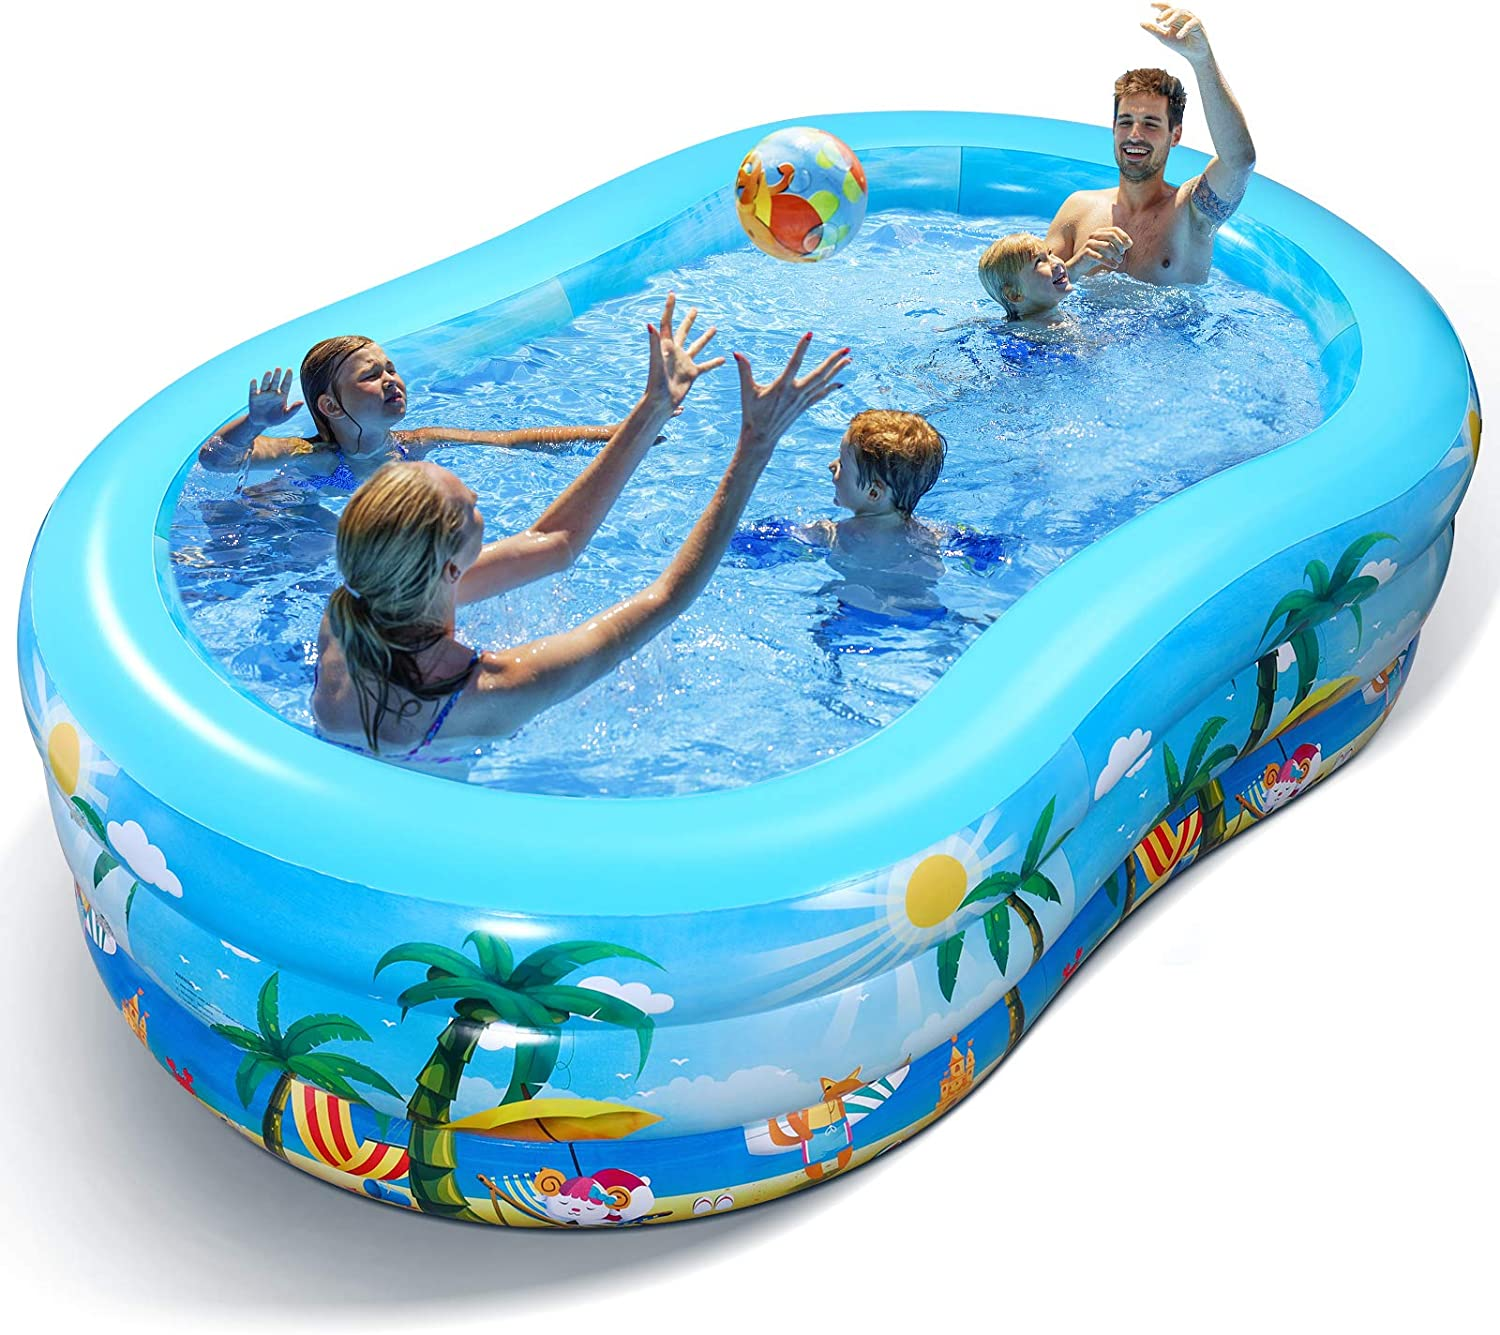 """Inflatable Swimming Pool - 95"""" x 59"""" x 24""""Full-Sized Family Lounge Pools for Kids & Adults, Kids Pool Blow Up Swim Center for Outdoor, Garden, Backyard, Summer Water Party - Inflatable Kiddie Pools"""